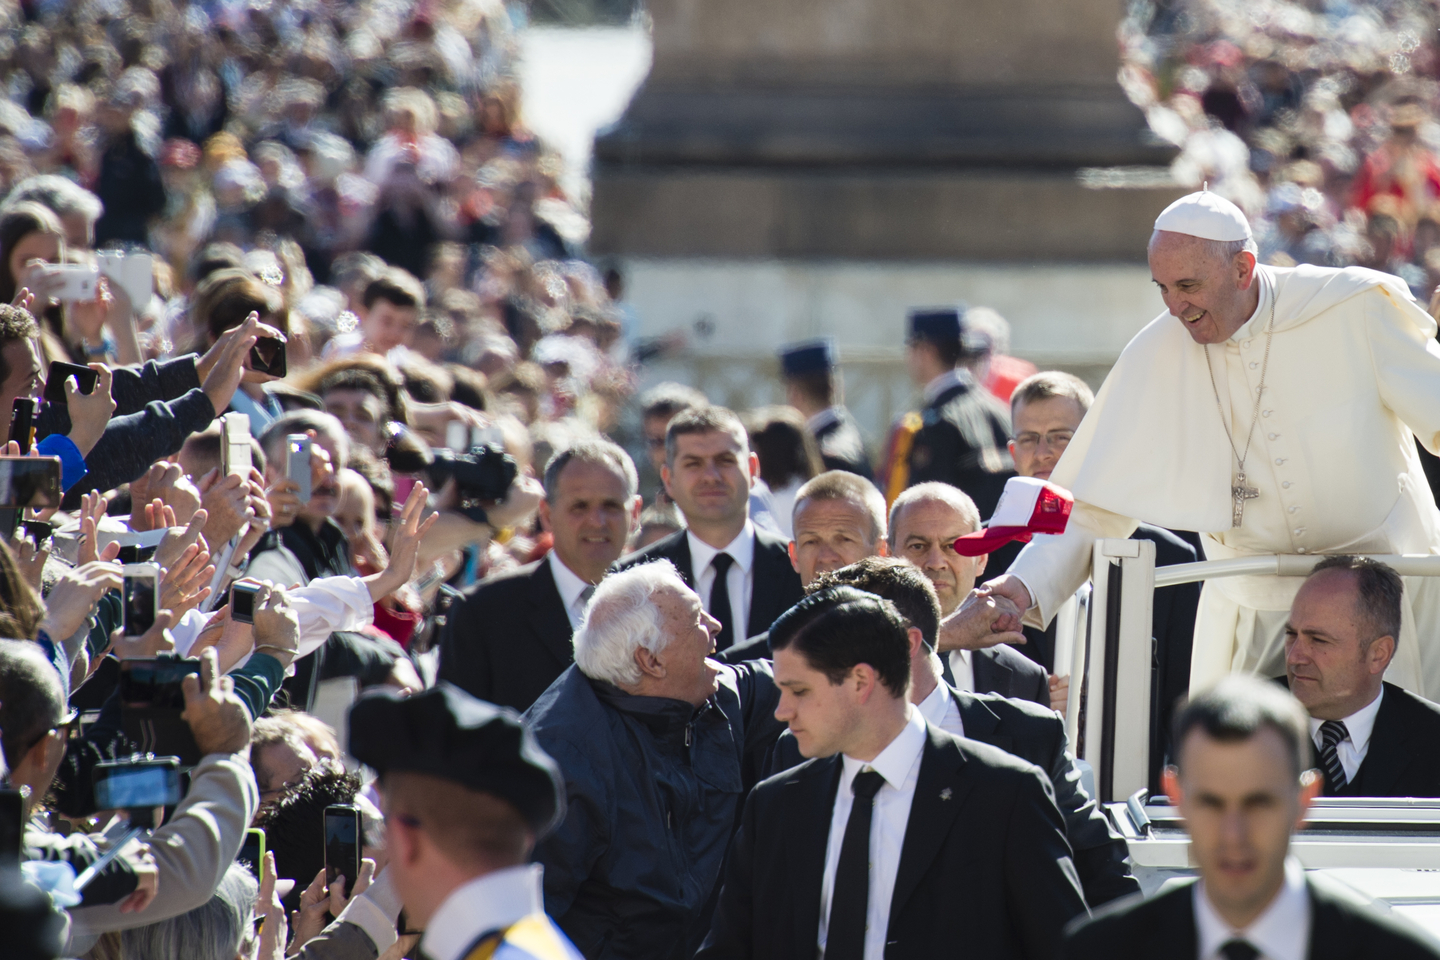 Pope Francis greets the crowd as he arrives for his weekly gener